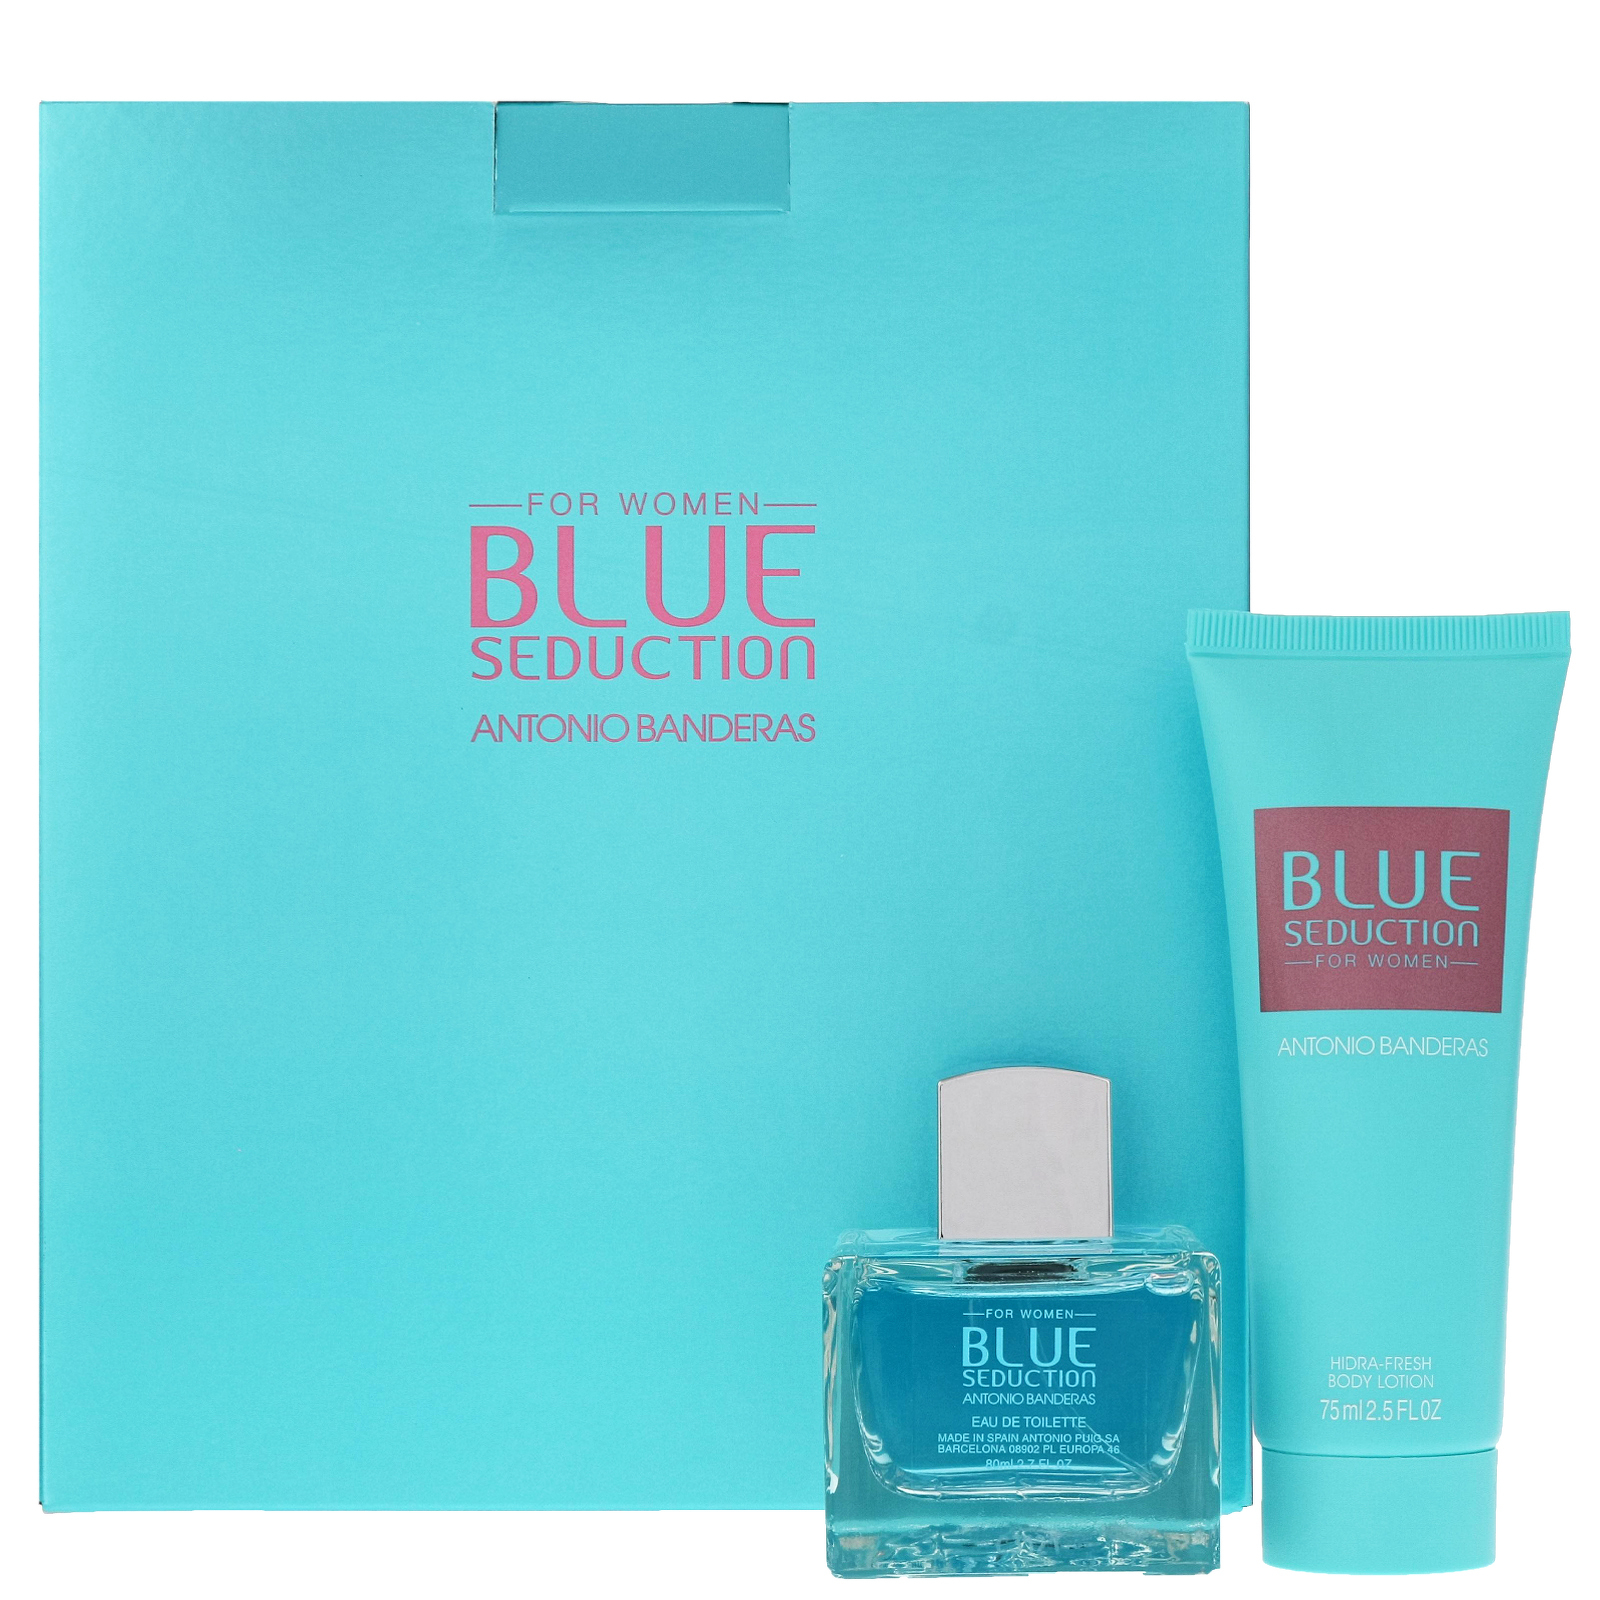 Antonio Banderas Blue Seduction For Women Eau de Toilette Spray 80ml Gift Set